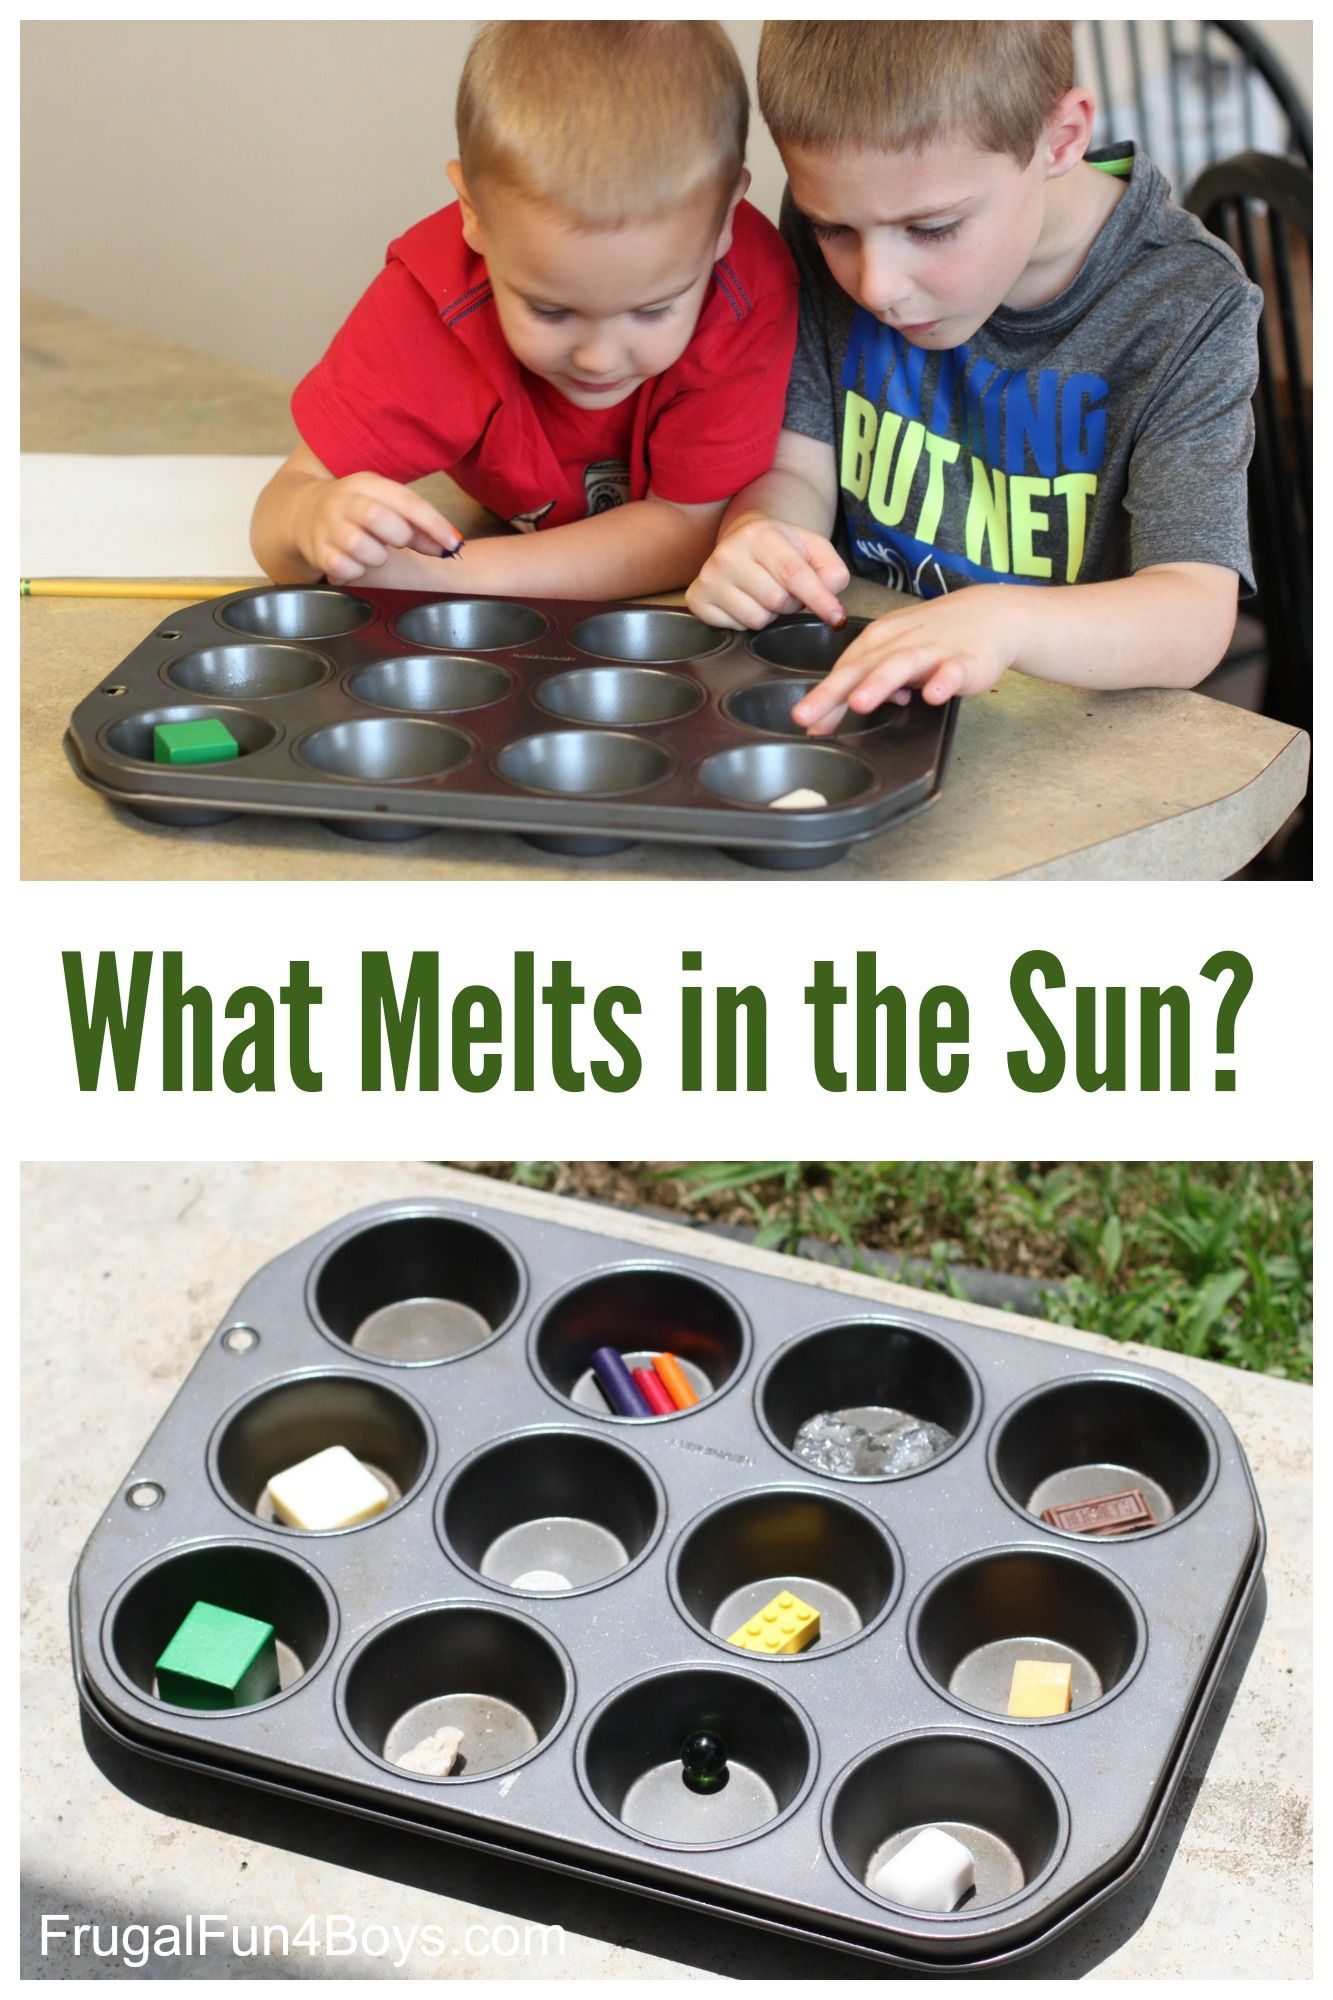 Simple Science Experiment for Kids: What Melts in the Sun